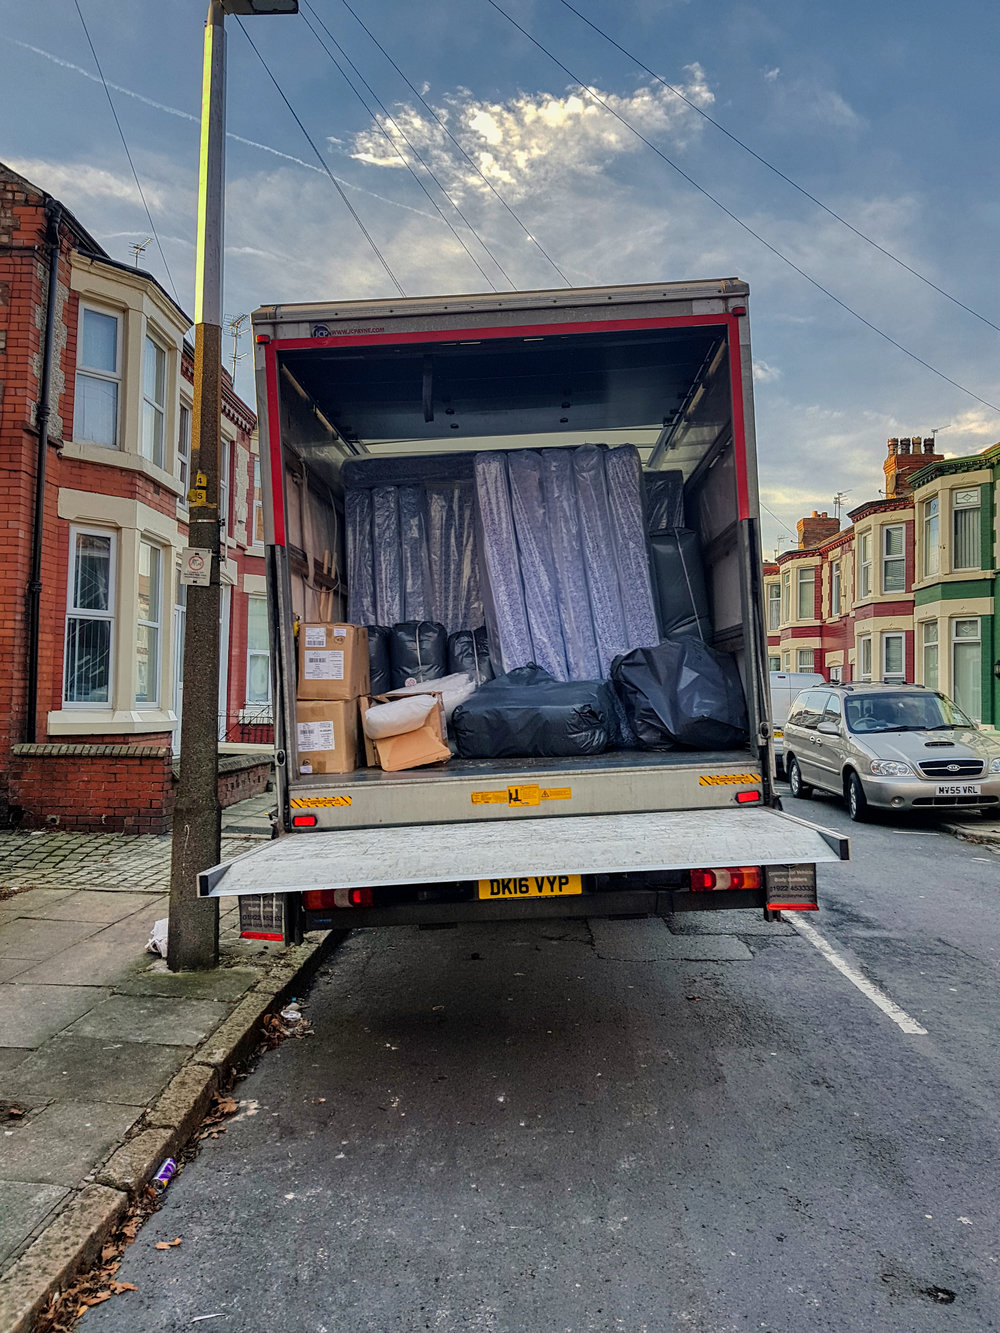 One of the vans, fully loaded, out delivering beds